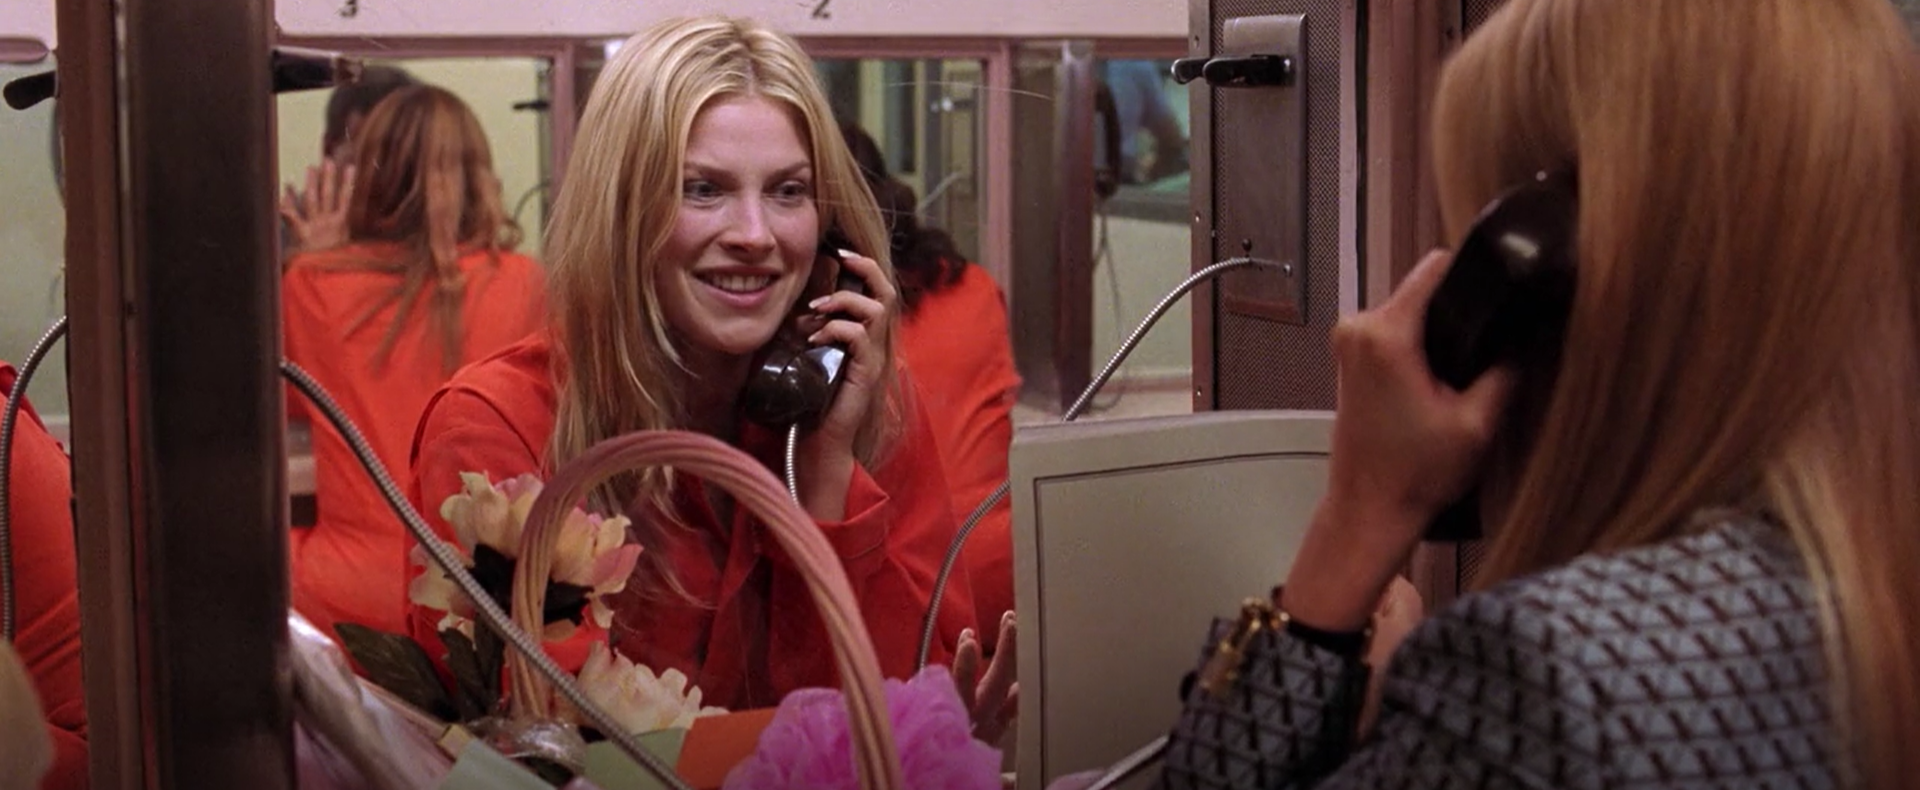 Elle (Reese Witherspoon) earns Brooke Windham's (Ali Larter) trust while trying to get her alibi.